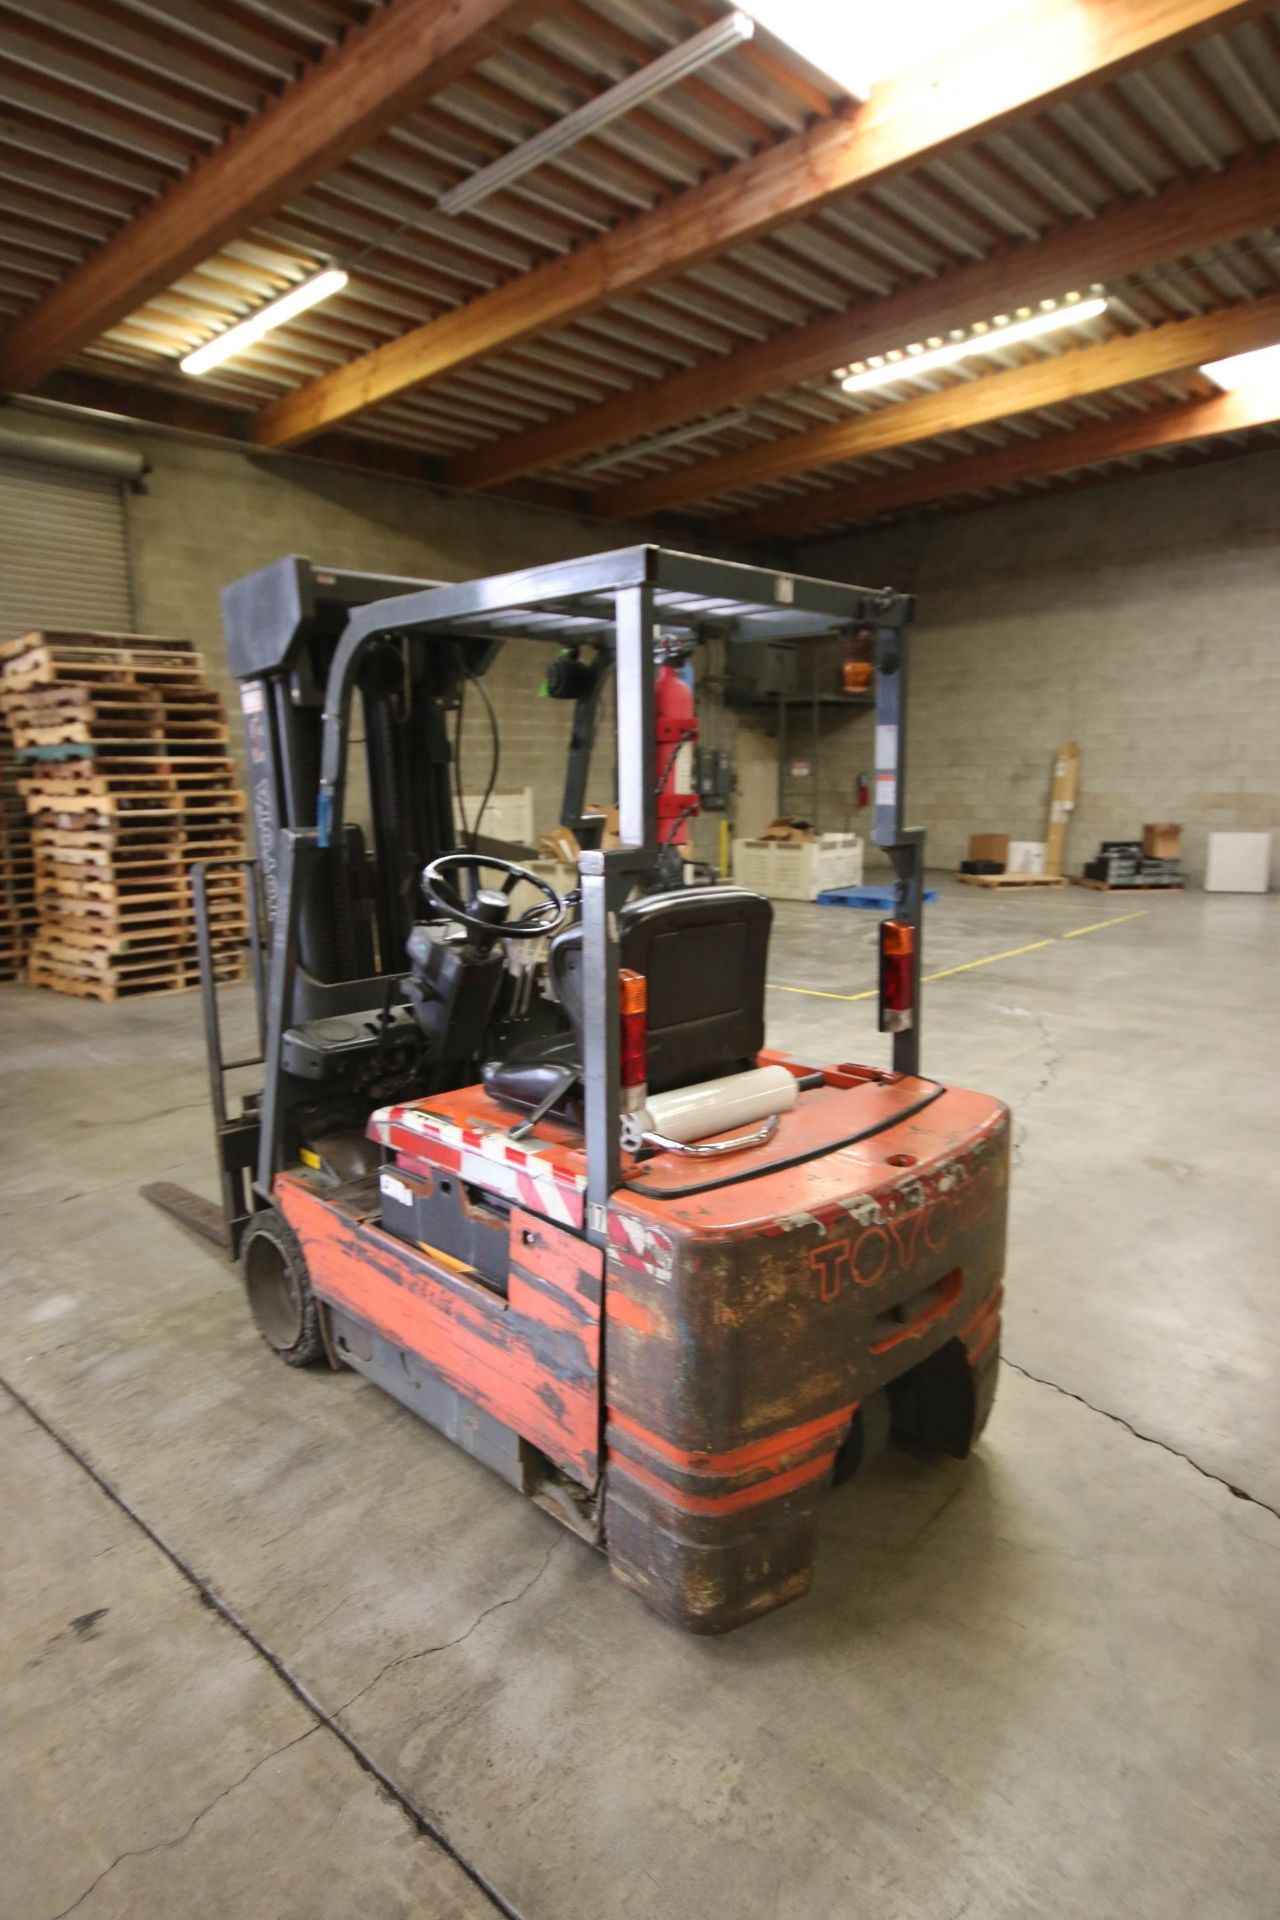 Lot 44A - Toyota 2,200 lb. Sit-Down Electric Forklift, M/N 5FBE20, S/N 12393, 36 Volt Battery, with Triple